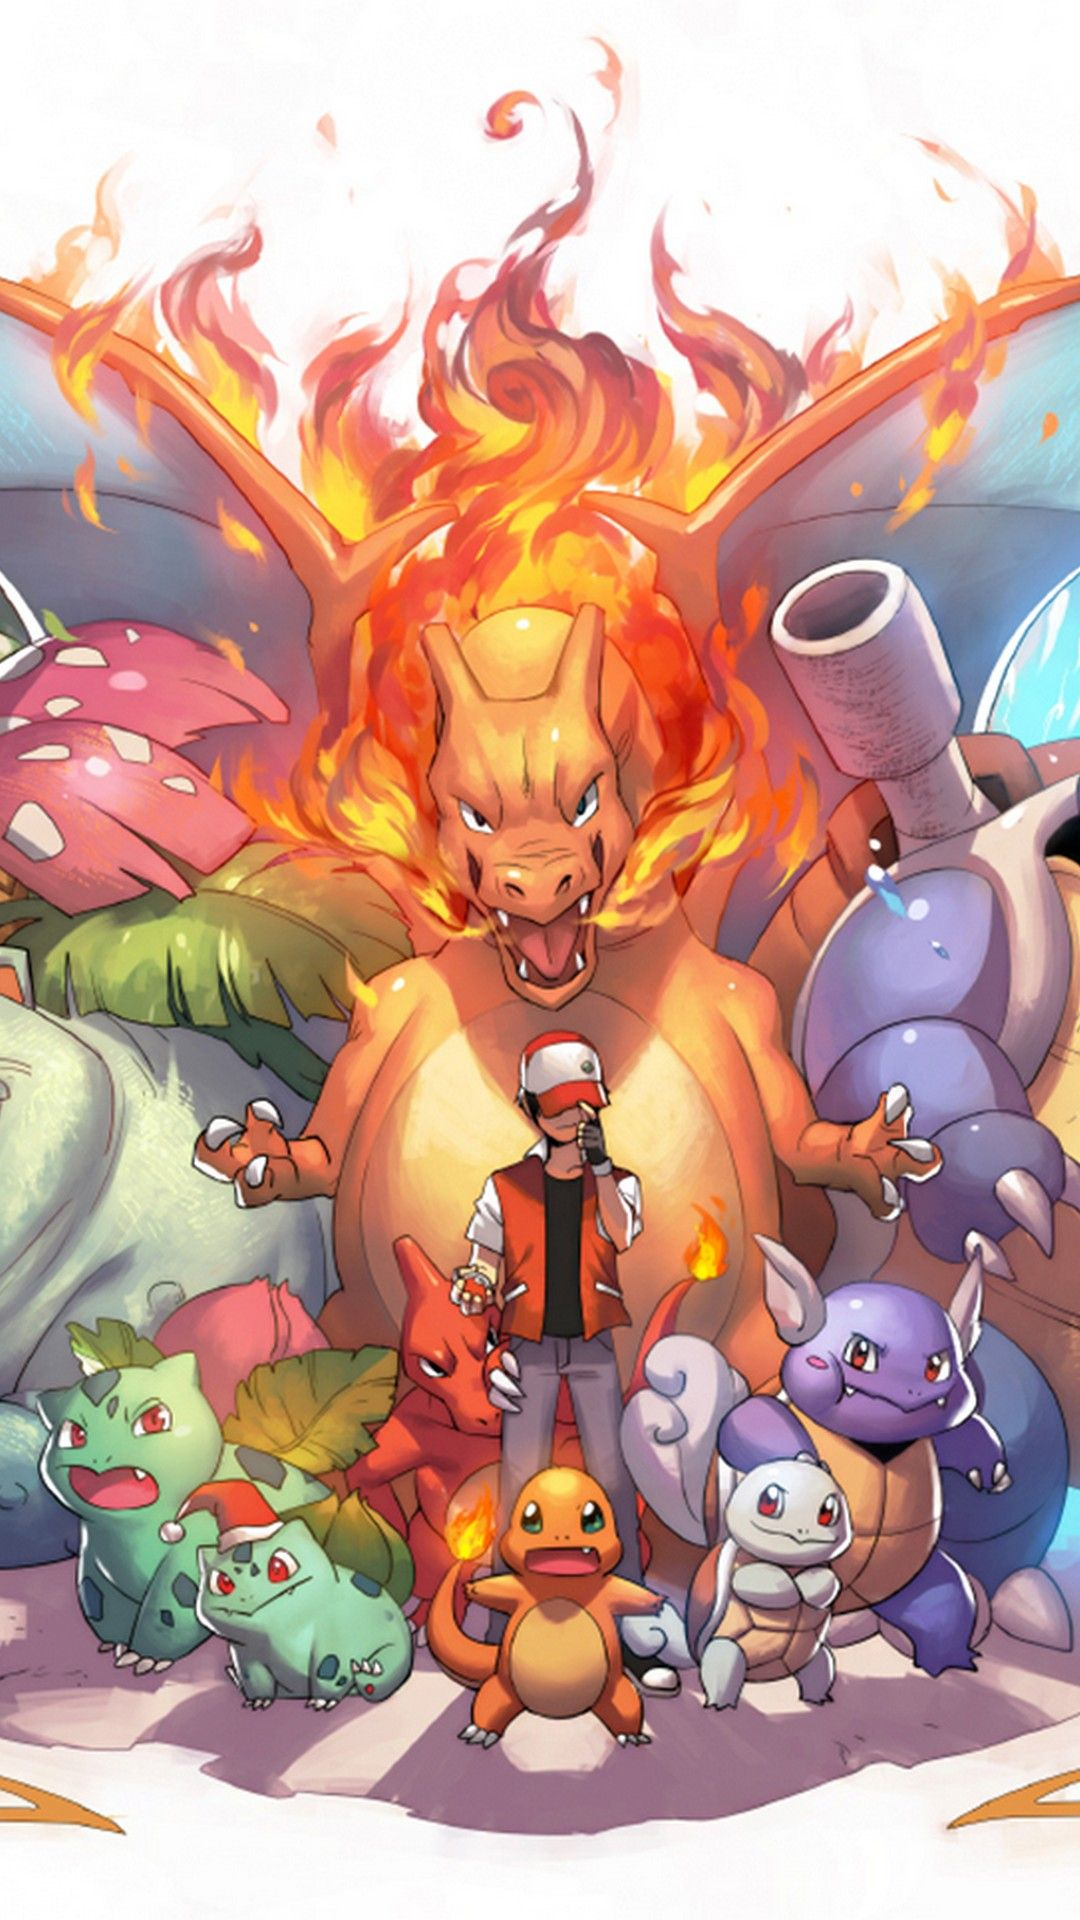 Pokemon Wallpaper Hd To Download Android Wallpaper Hd Pokemon 2019 Android Wallpapers In 2020 Pokemon Android Wallpaper Cute Pokemon Wallpaper Cool Anime Wallpapers